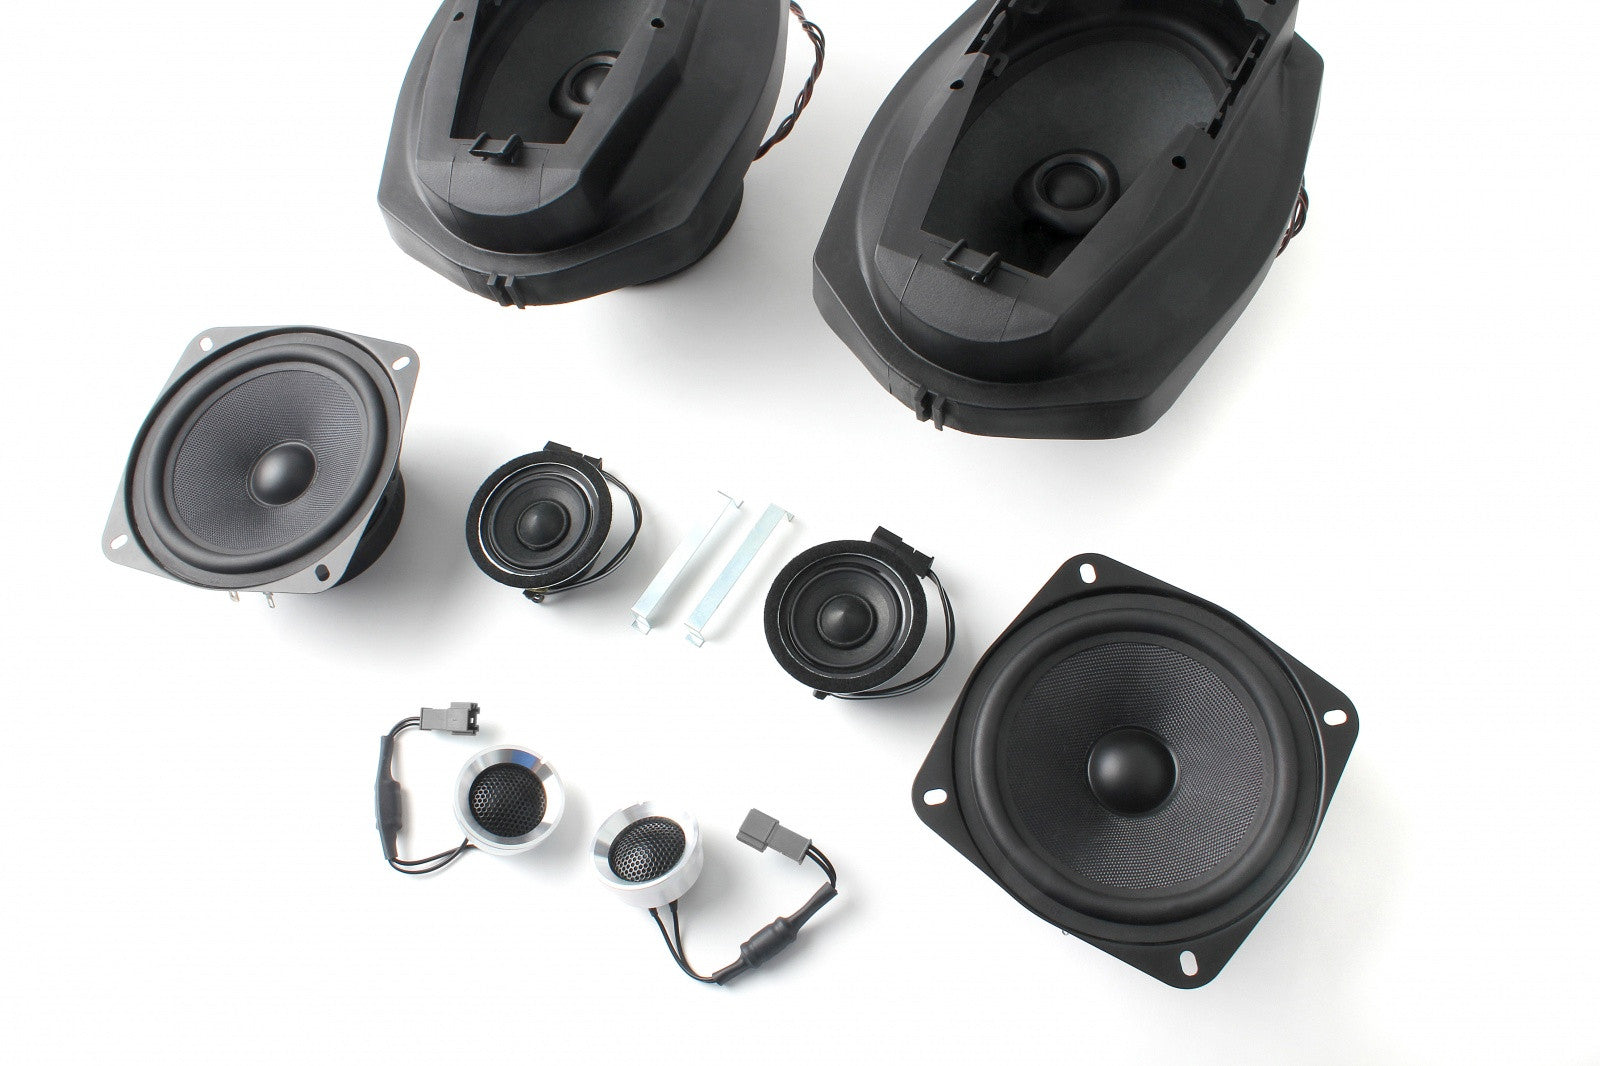 BACKORDERED: SHIPS AUGUST BMW Speaker Upgrade for 1996-1999 E36 Coupe/Sedan with Standard Hi-Fi